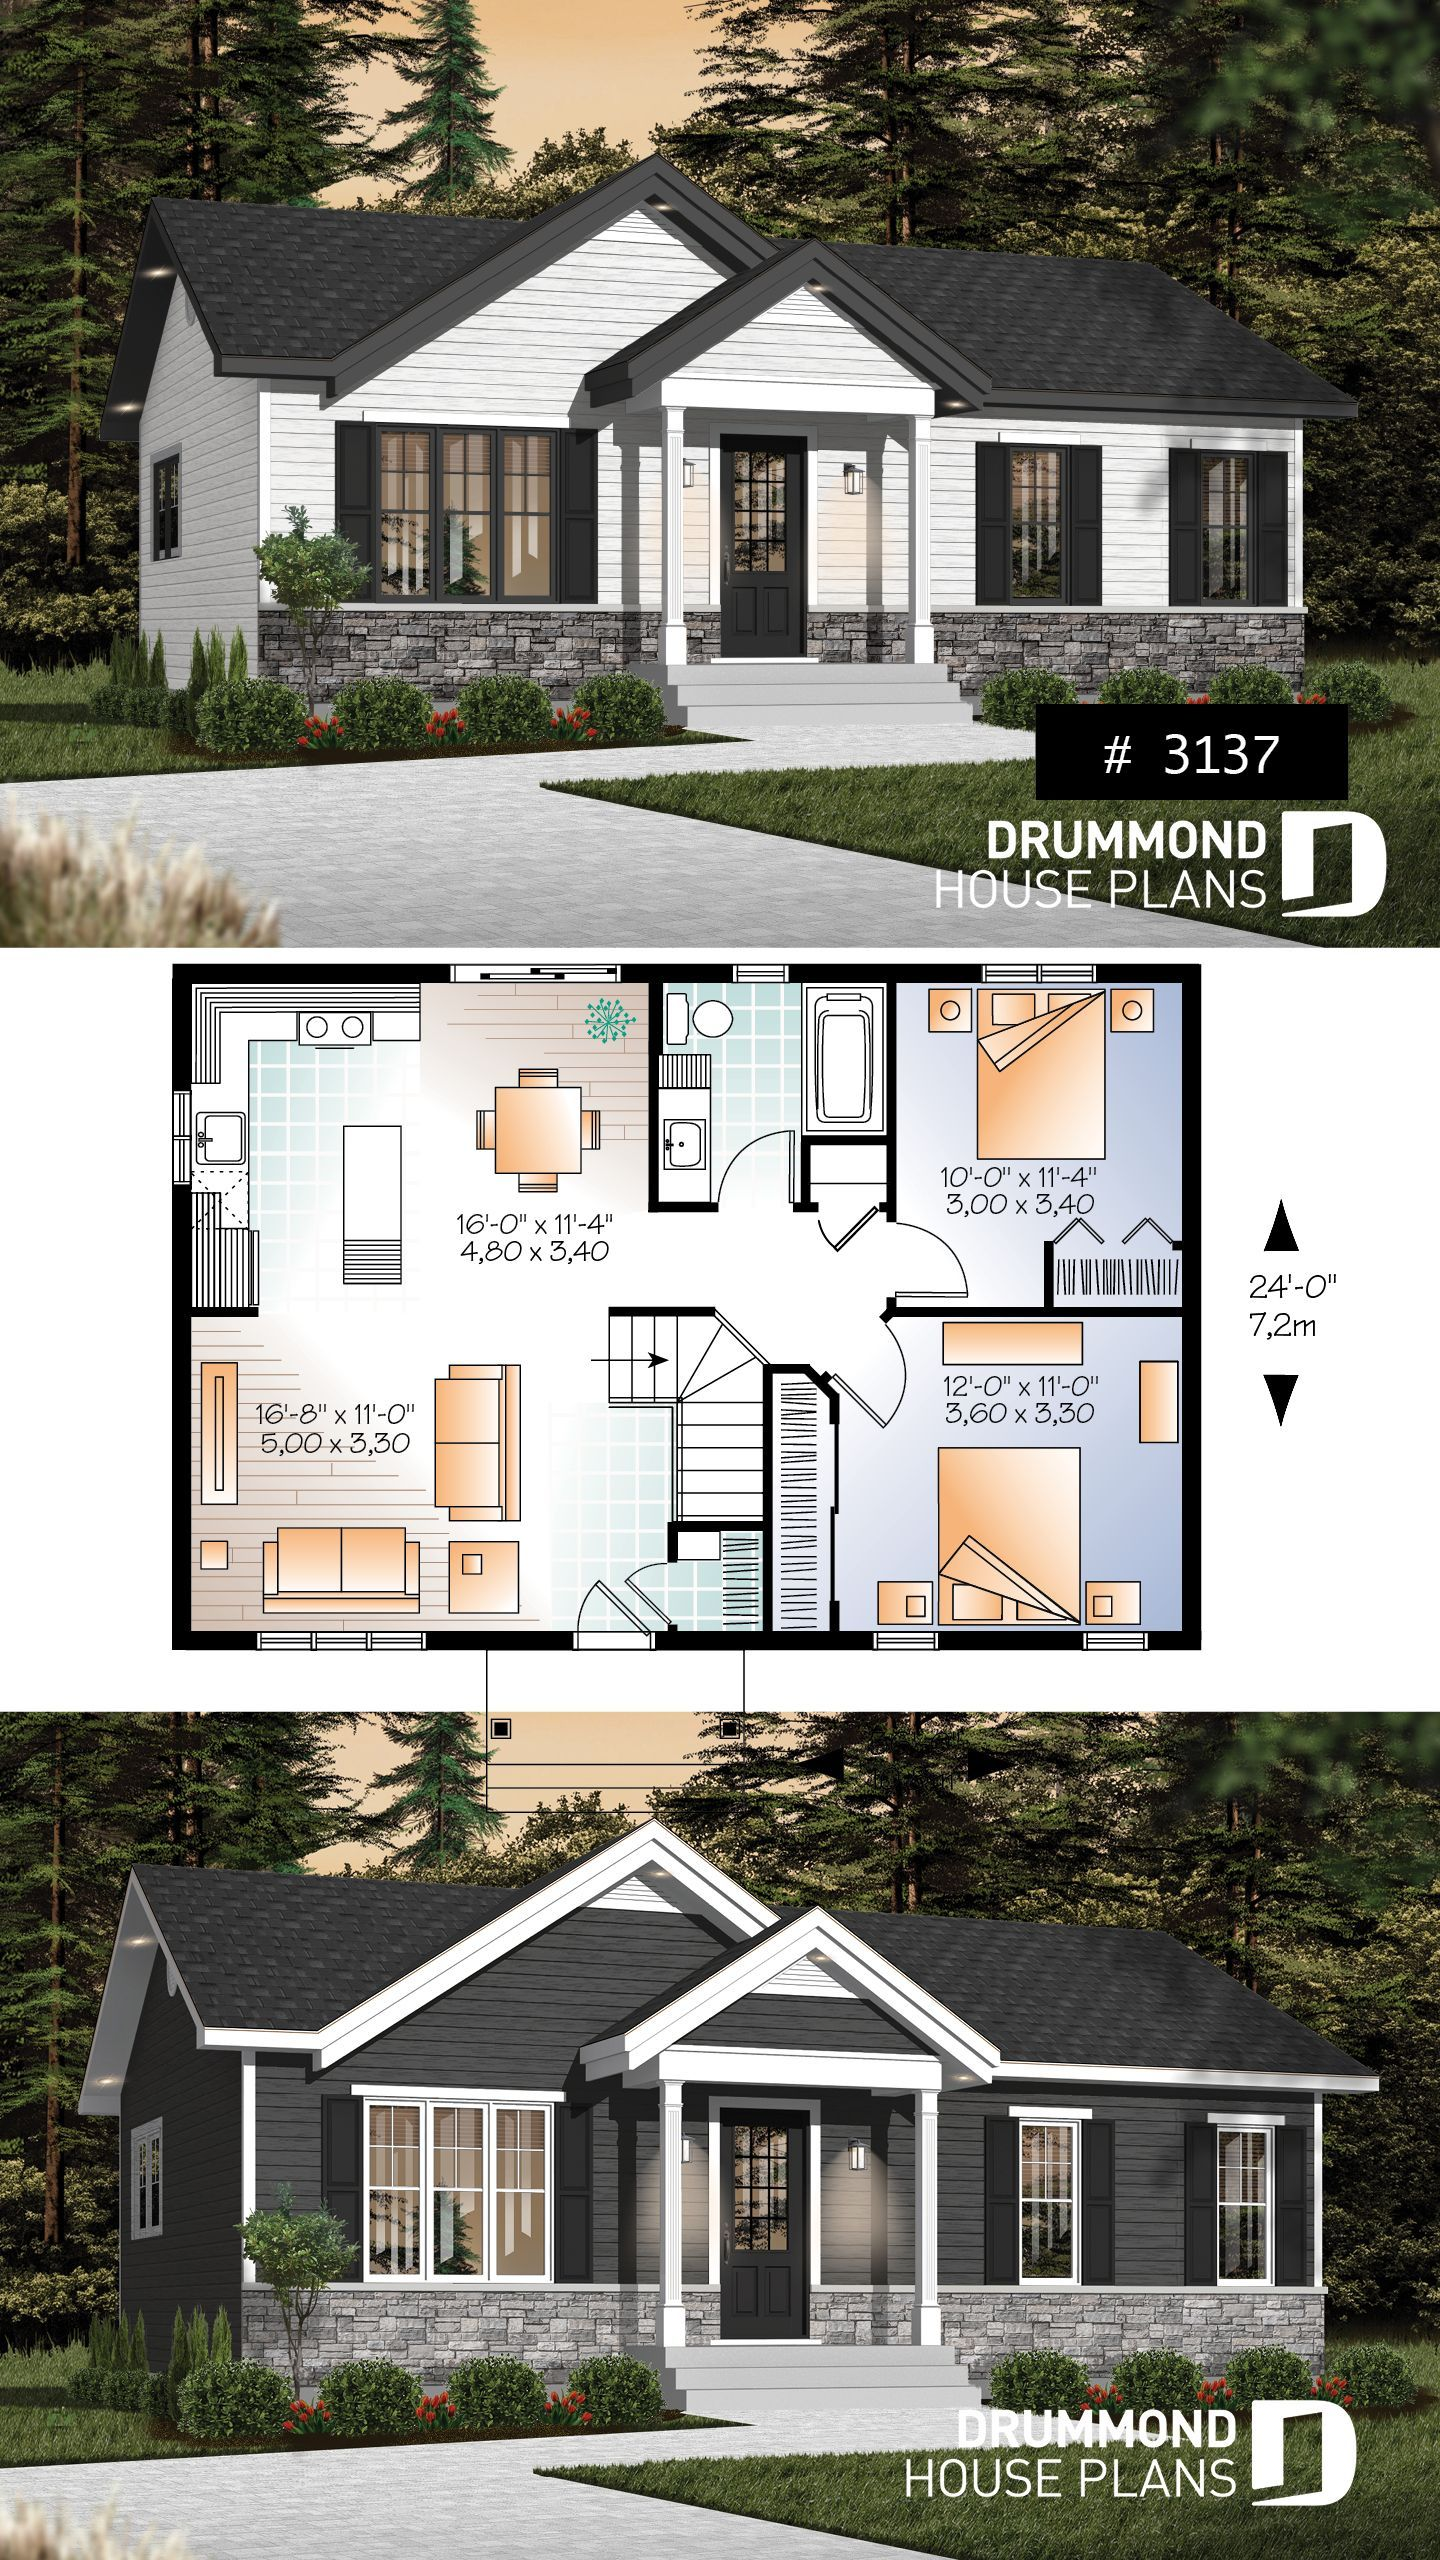 Affordable Bungalow Small Economical Modern Rustic Starter Home Design With Open Flo Small House Design Exterior Small House Design Plans Small House Design